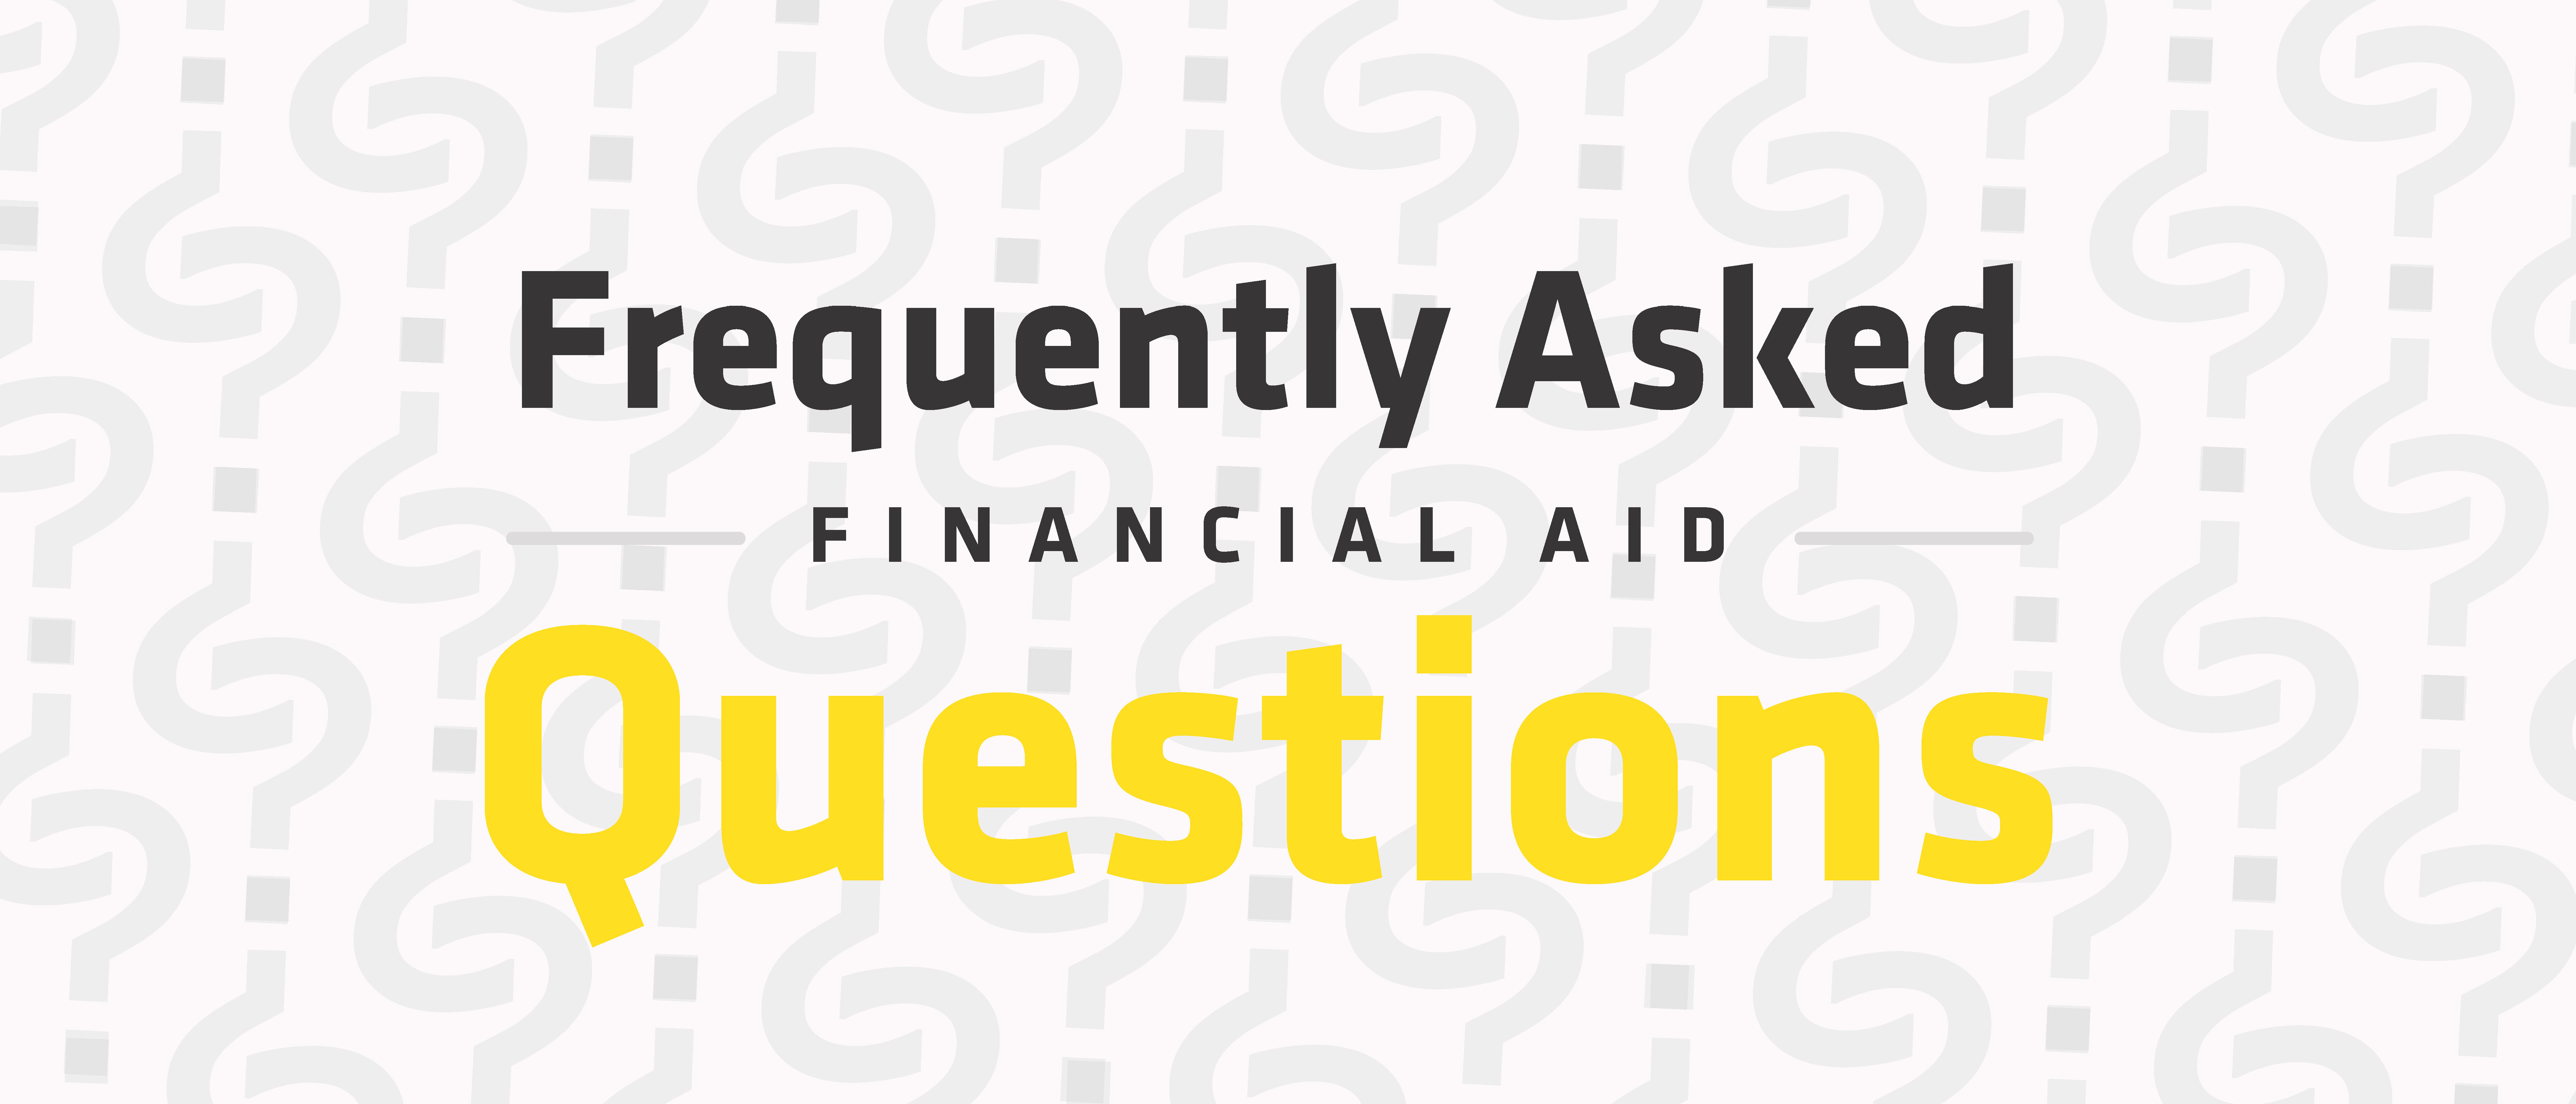 Frequently Asked Financial Aid Questions